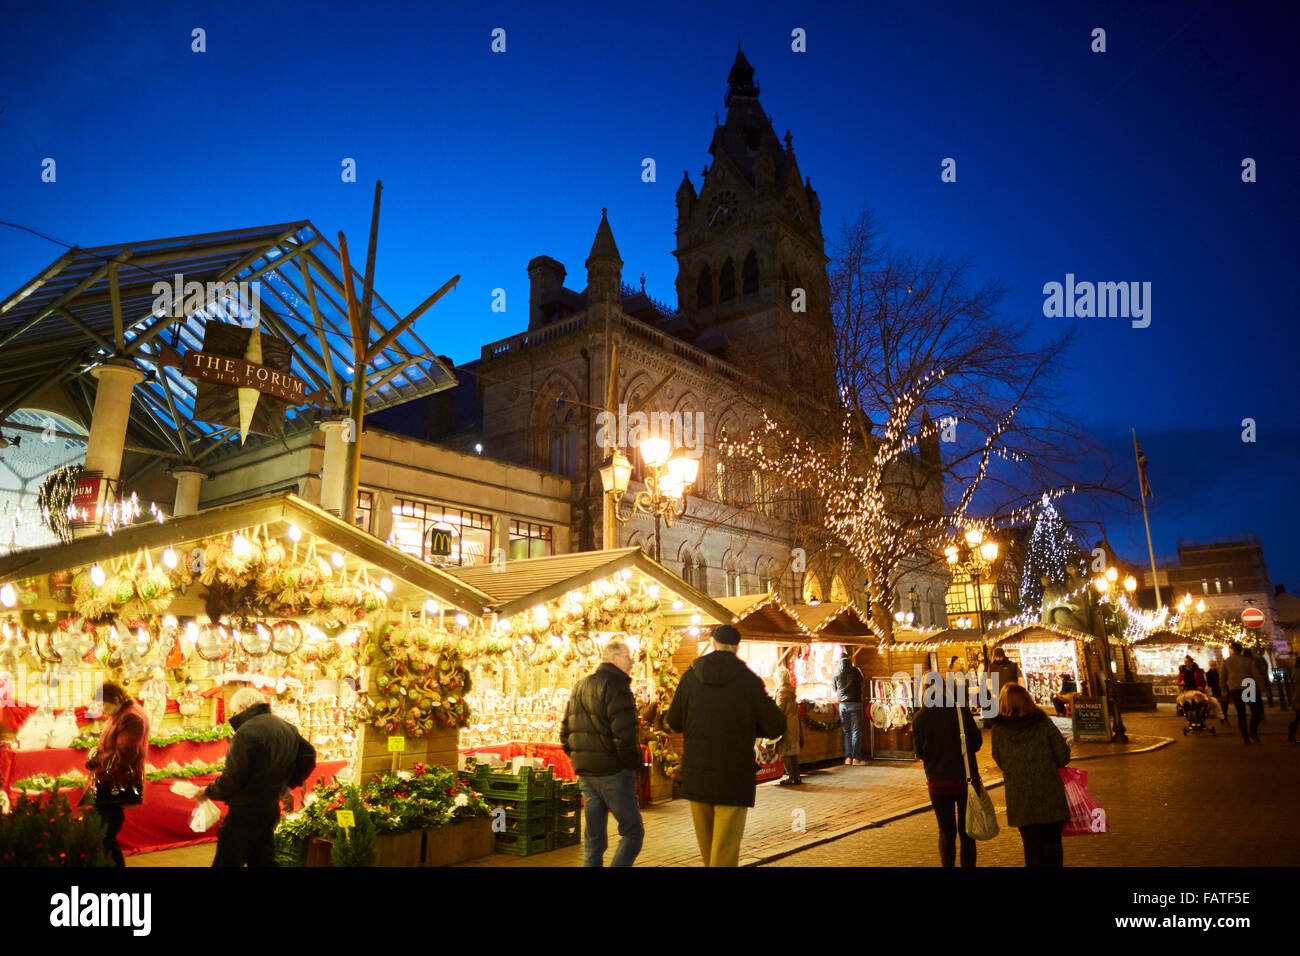 Chester city centre German style Christmas Markets 2015  Market bazaar vendor trader traders independent shops shoppers - Stock Image